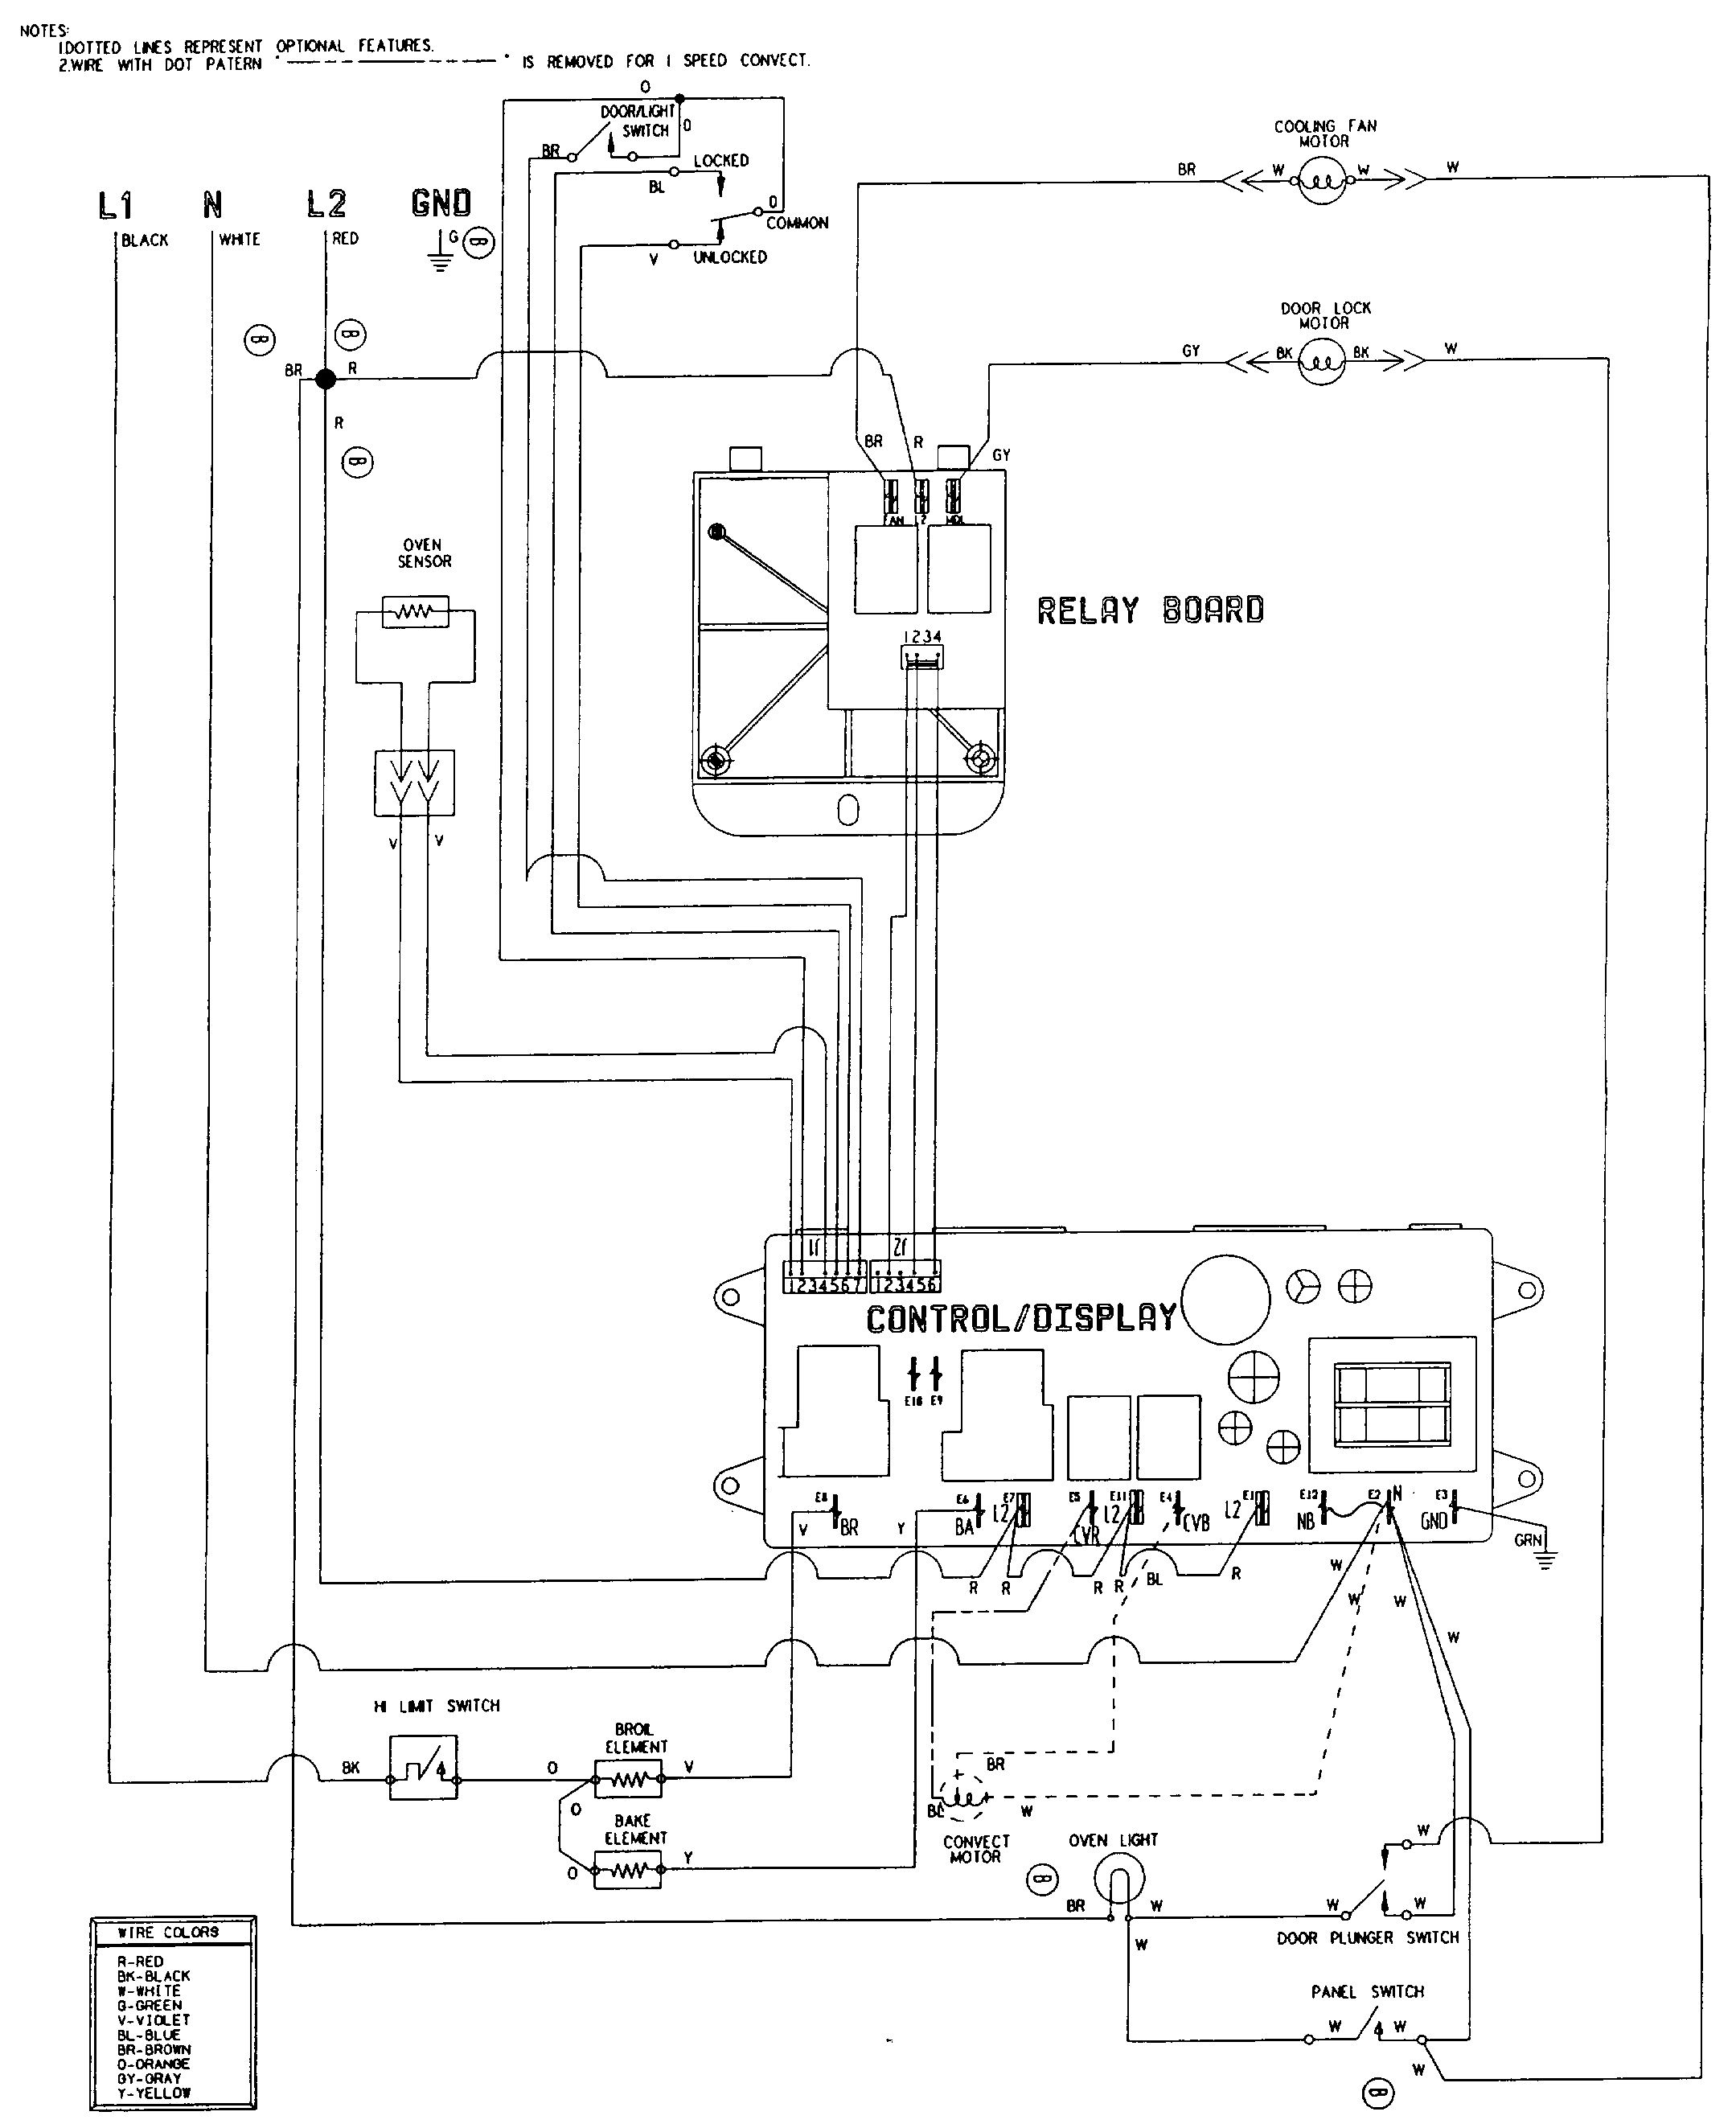 Ge Appliances Wiring Schematic Diagram Will Be A Thing Range Jenn Air W27100w Electric Wall Oven Timer Stove Clocks Motor Dryer